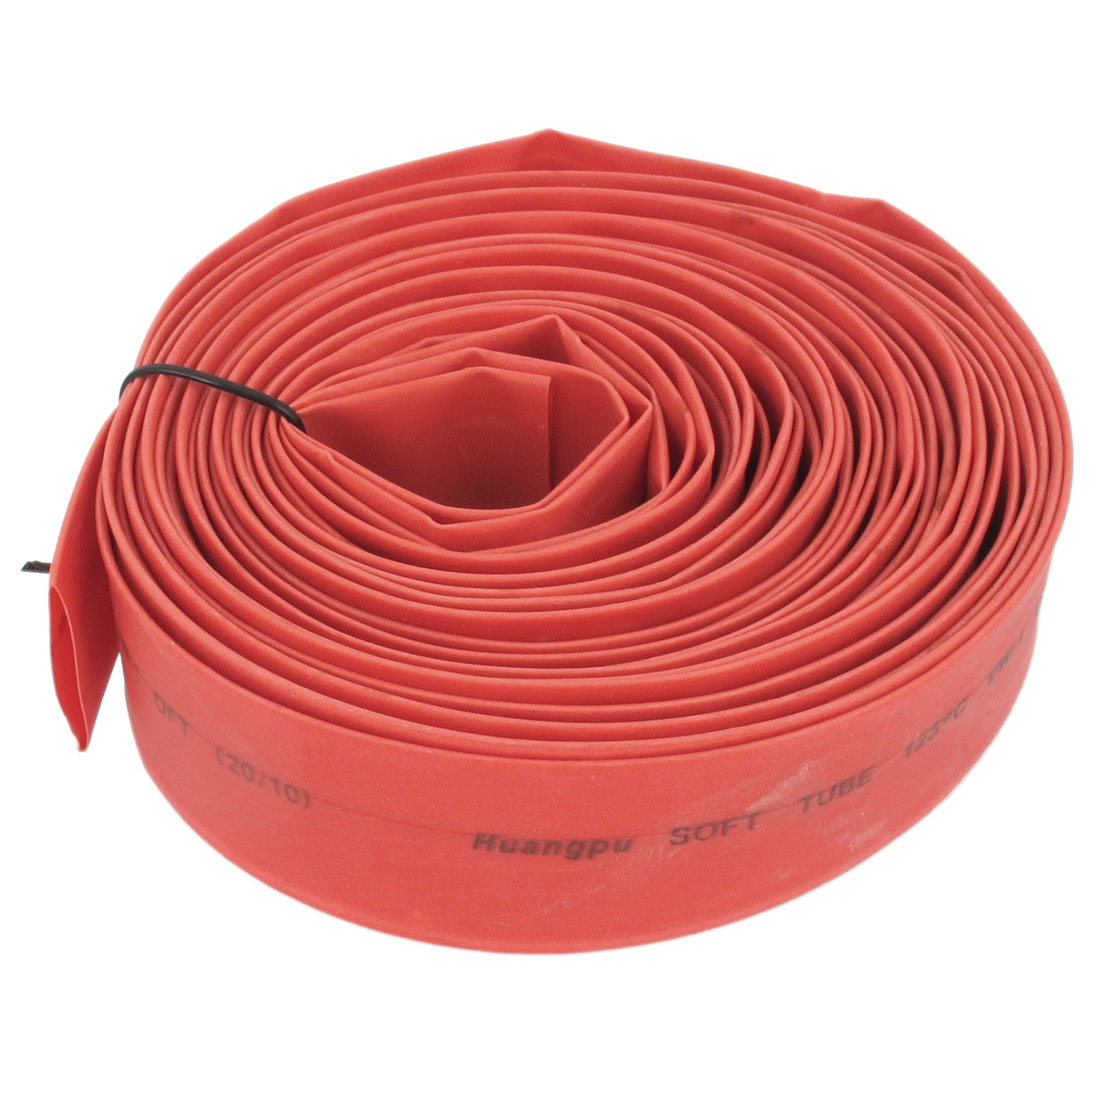 20mm Dia. Heat Shrinkable Tube Shrink Tubing 8m Length Red